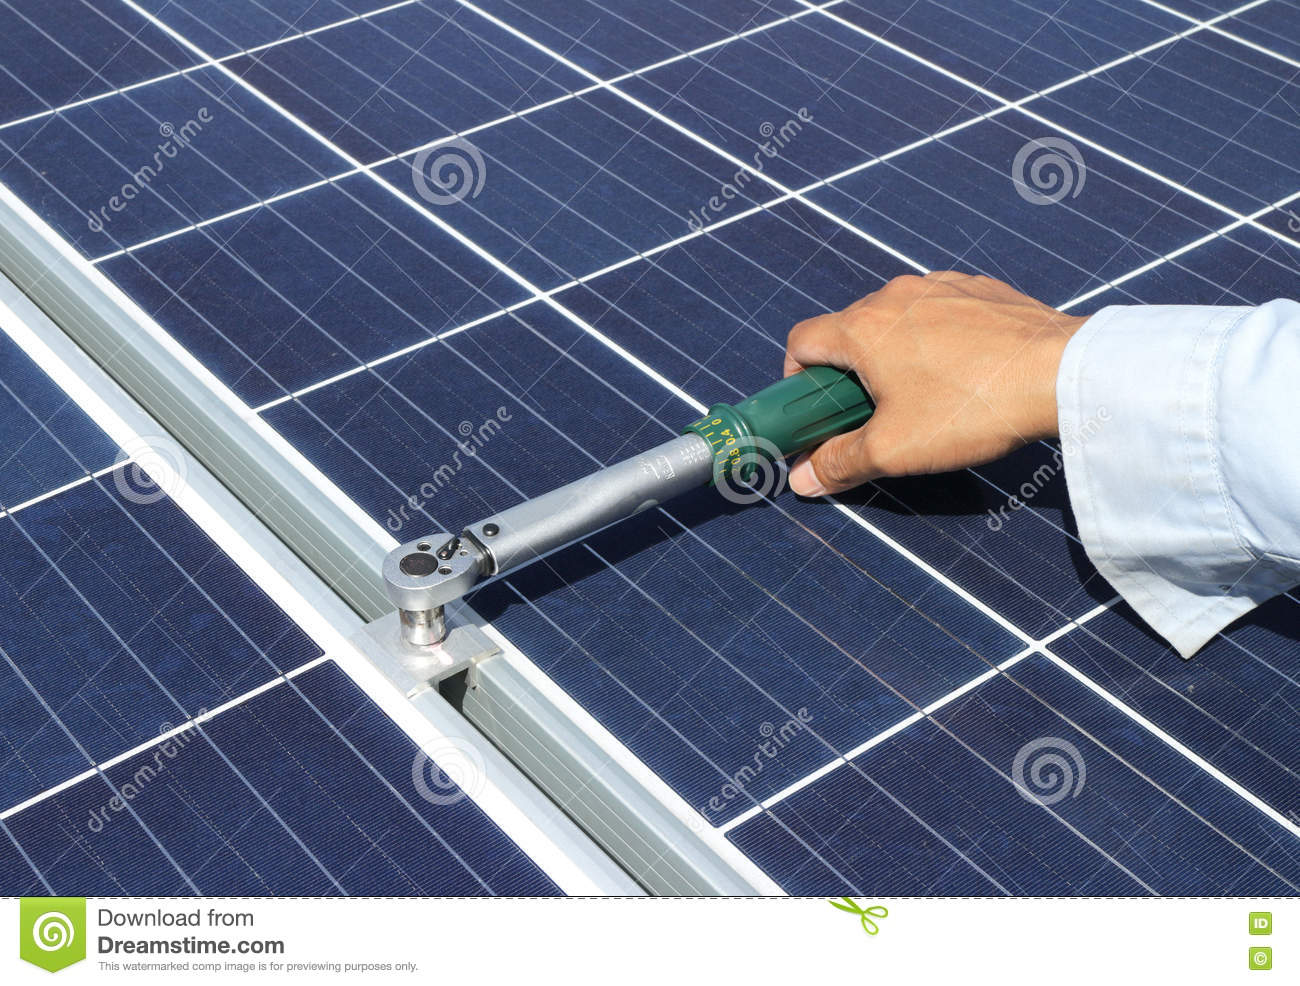 Hand Tightening Solar Panel Clamp With Torque Wrench Stock